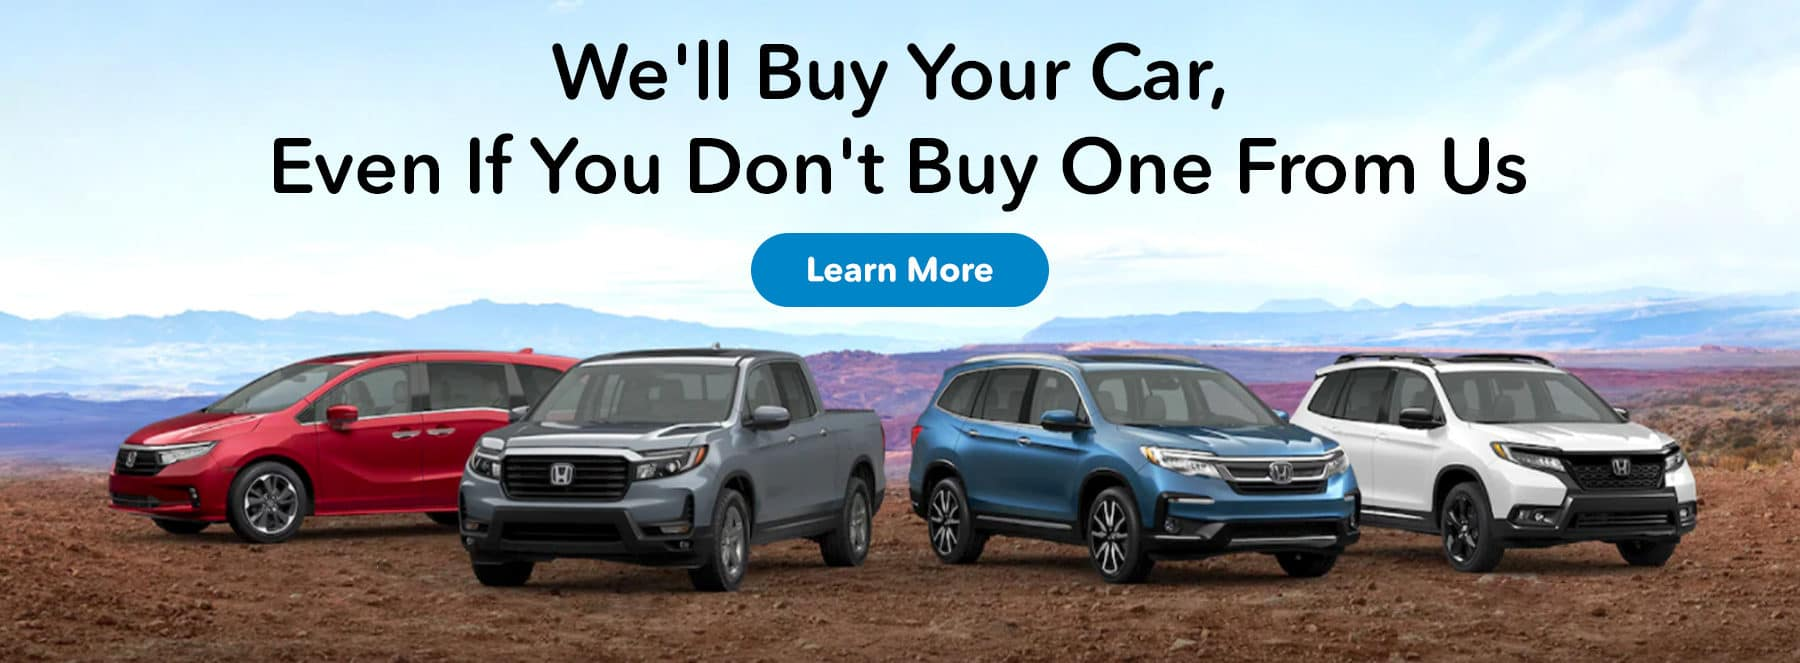 We'll Buy Your Car, Even If You Don't Buy One From Us